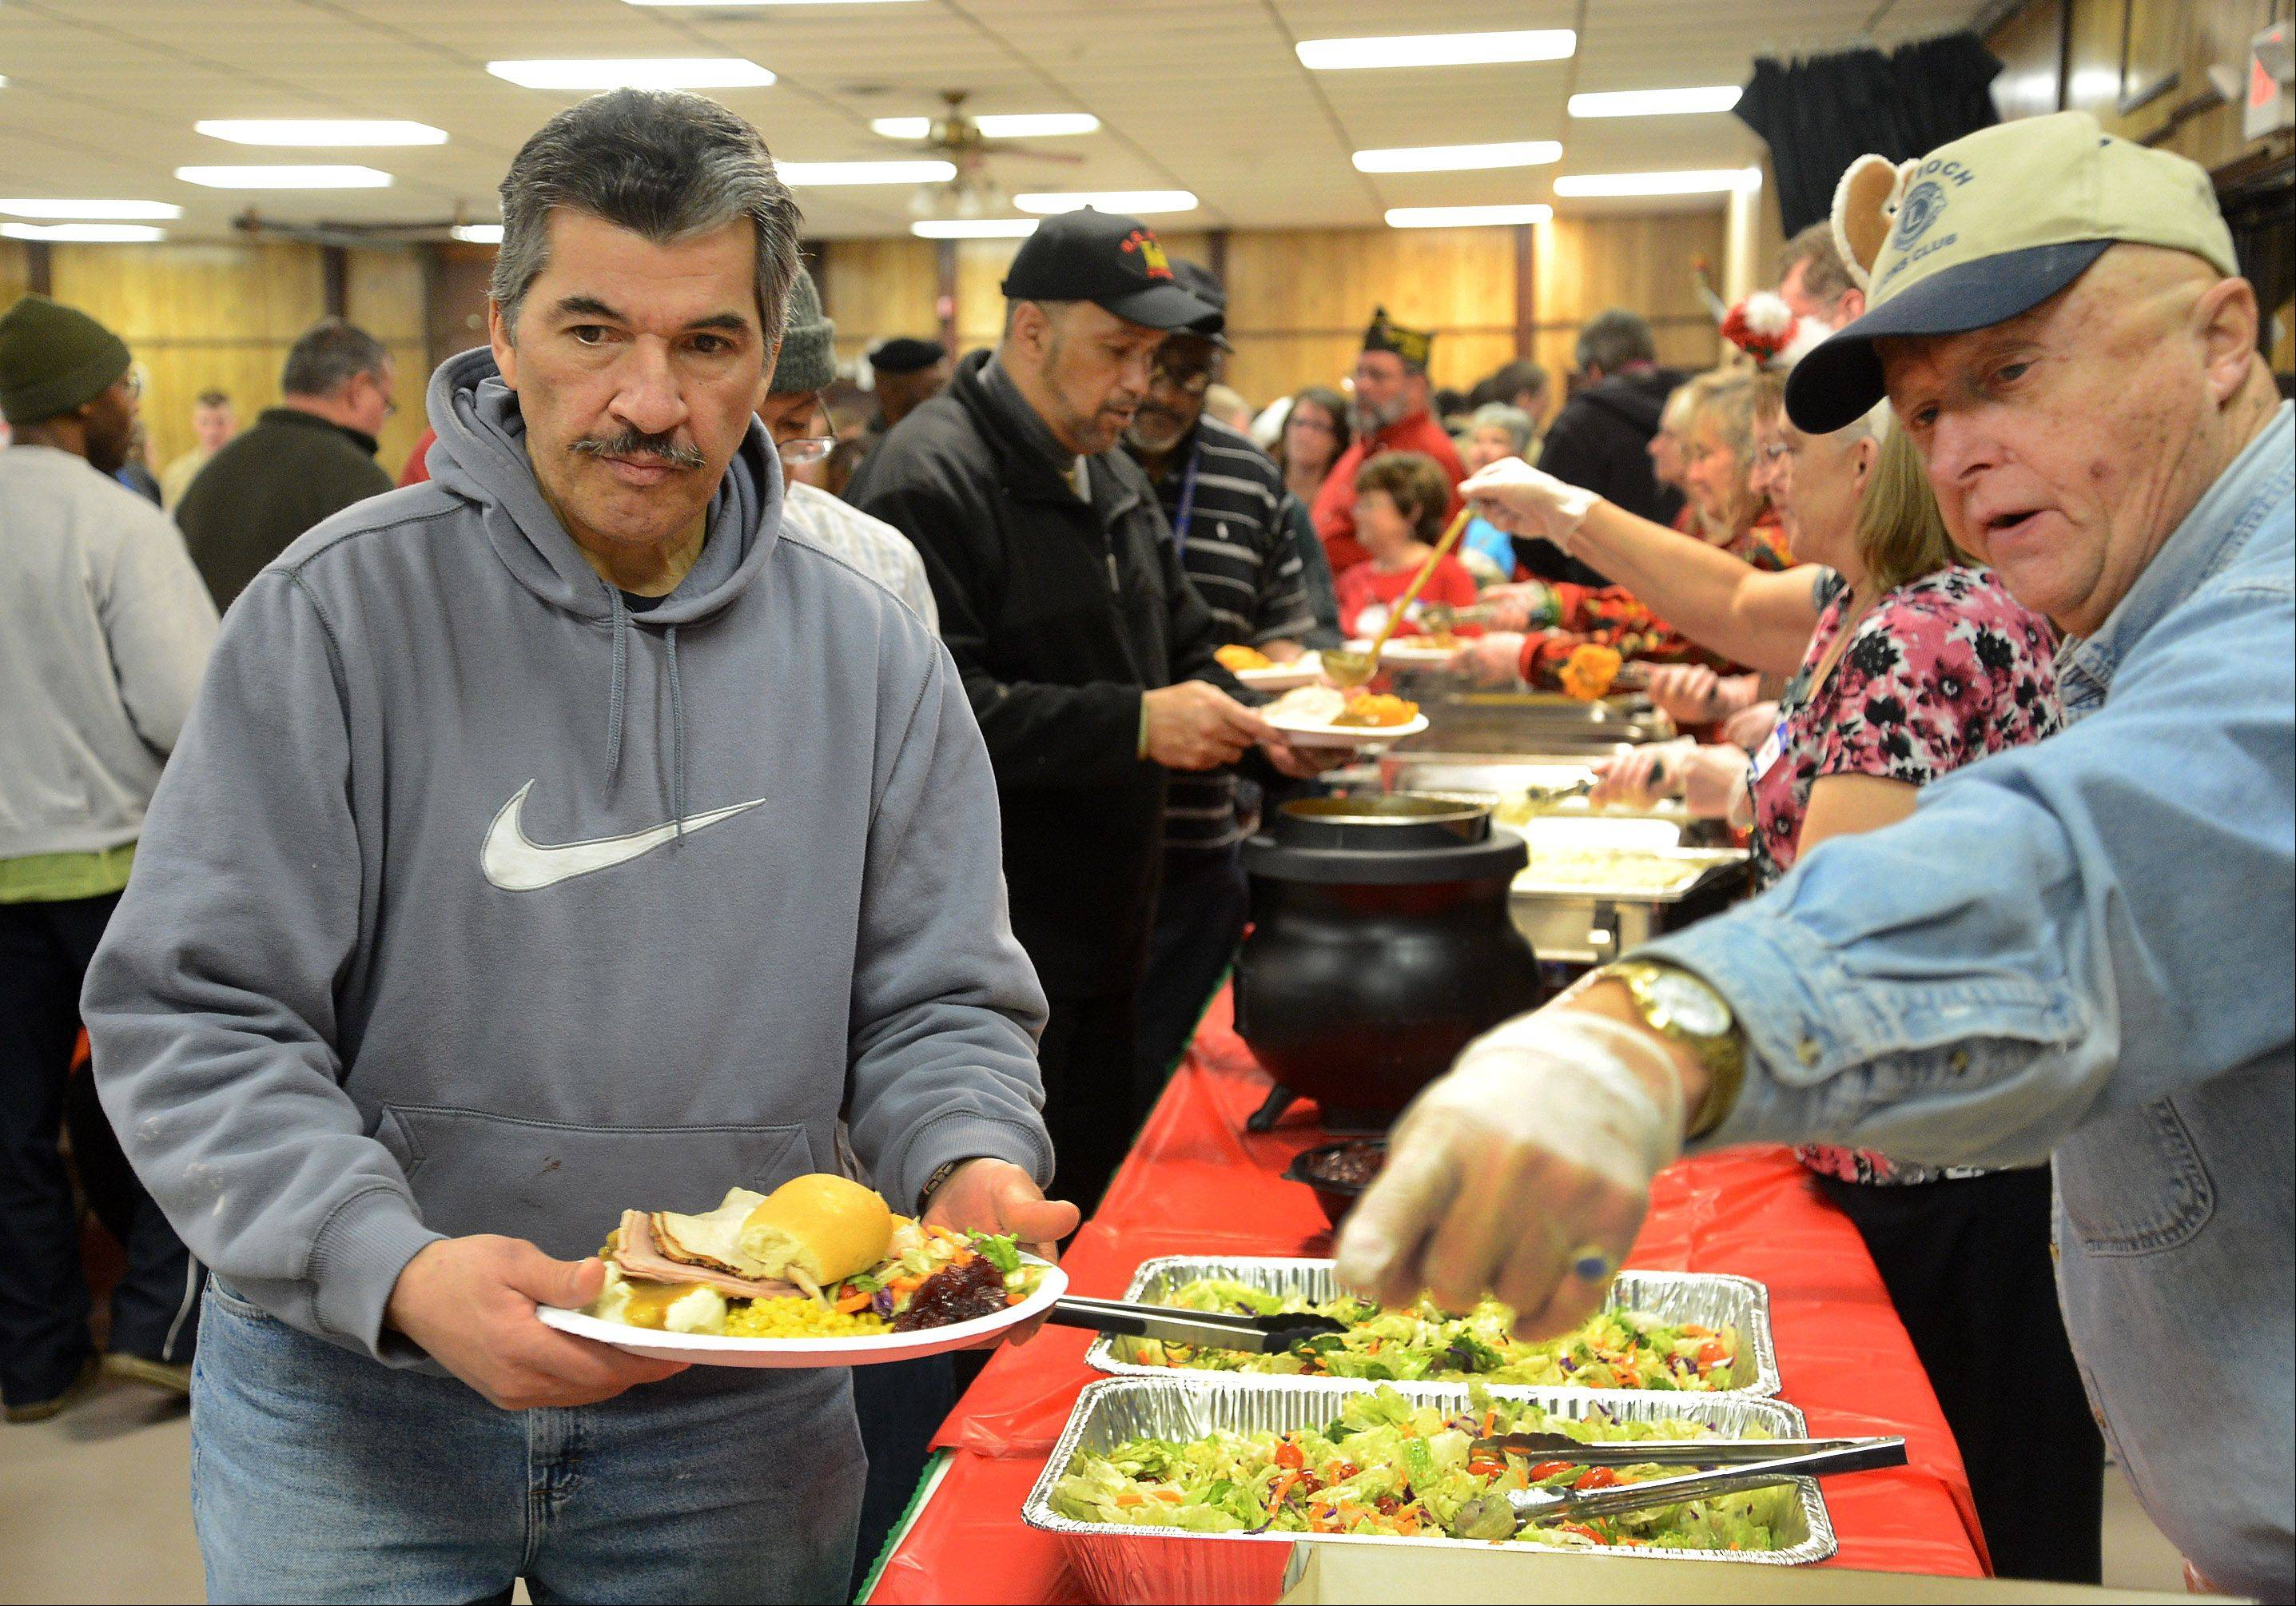 Volunteer Chuck Cermak of the Antioch Lions Club, right, serves up a roll for Howard Gibson of the Capt. James Lovell Federal Health Care Hospital in North Chicago, as the VFW in Antioch hosted 350 sailors from Great Lakes and 50 veterans from Lovell and Hines hospitals Saturday for a full Christmas dinner.